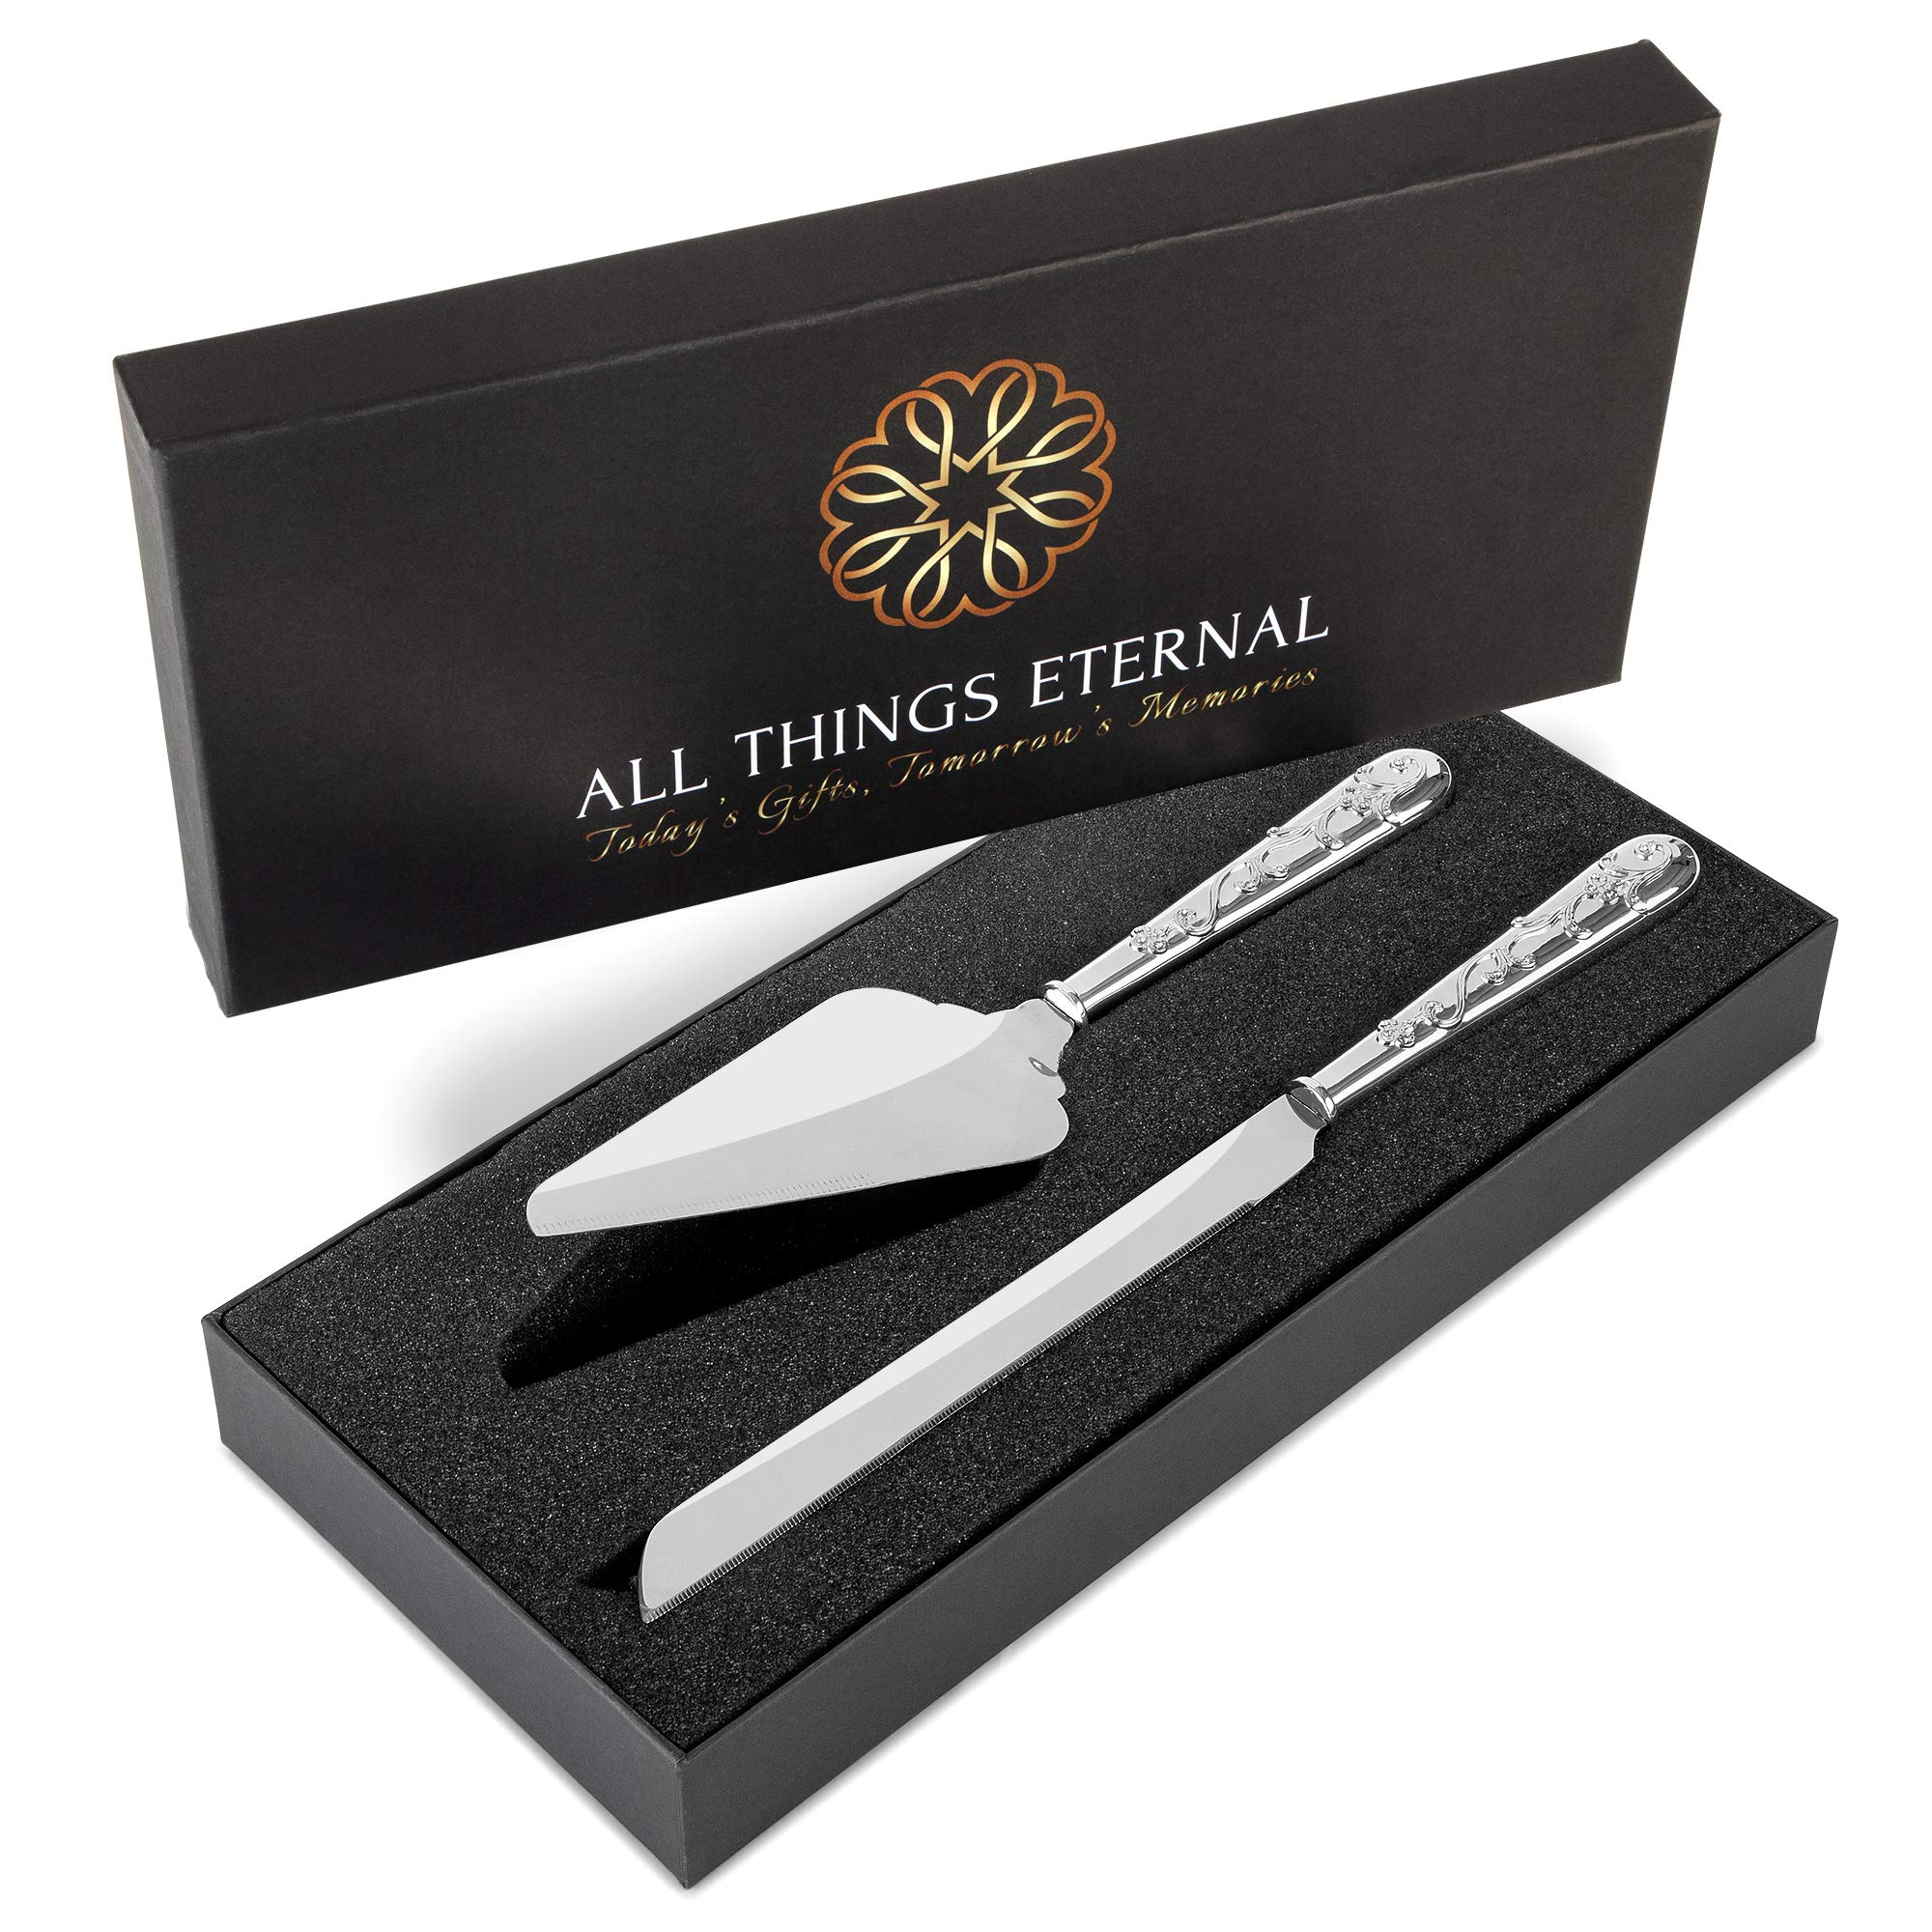 Wedding Cake Knife and Server Set, Silver-Plated with Hand-Set Crystals - Decorative Cutting and Serving Utensils for Cakes, Pie - Wedding Accessories and Gifts for Bride and Groom